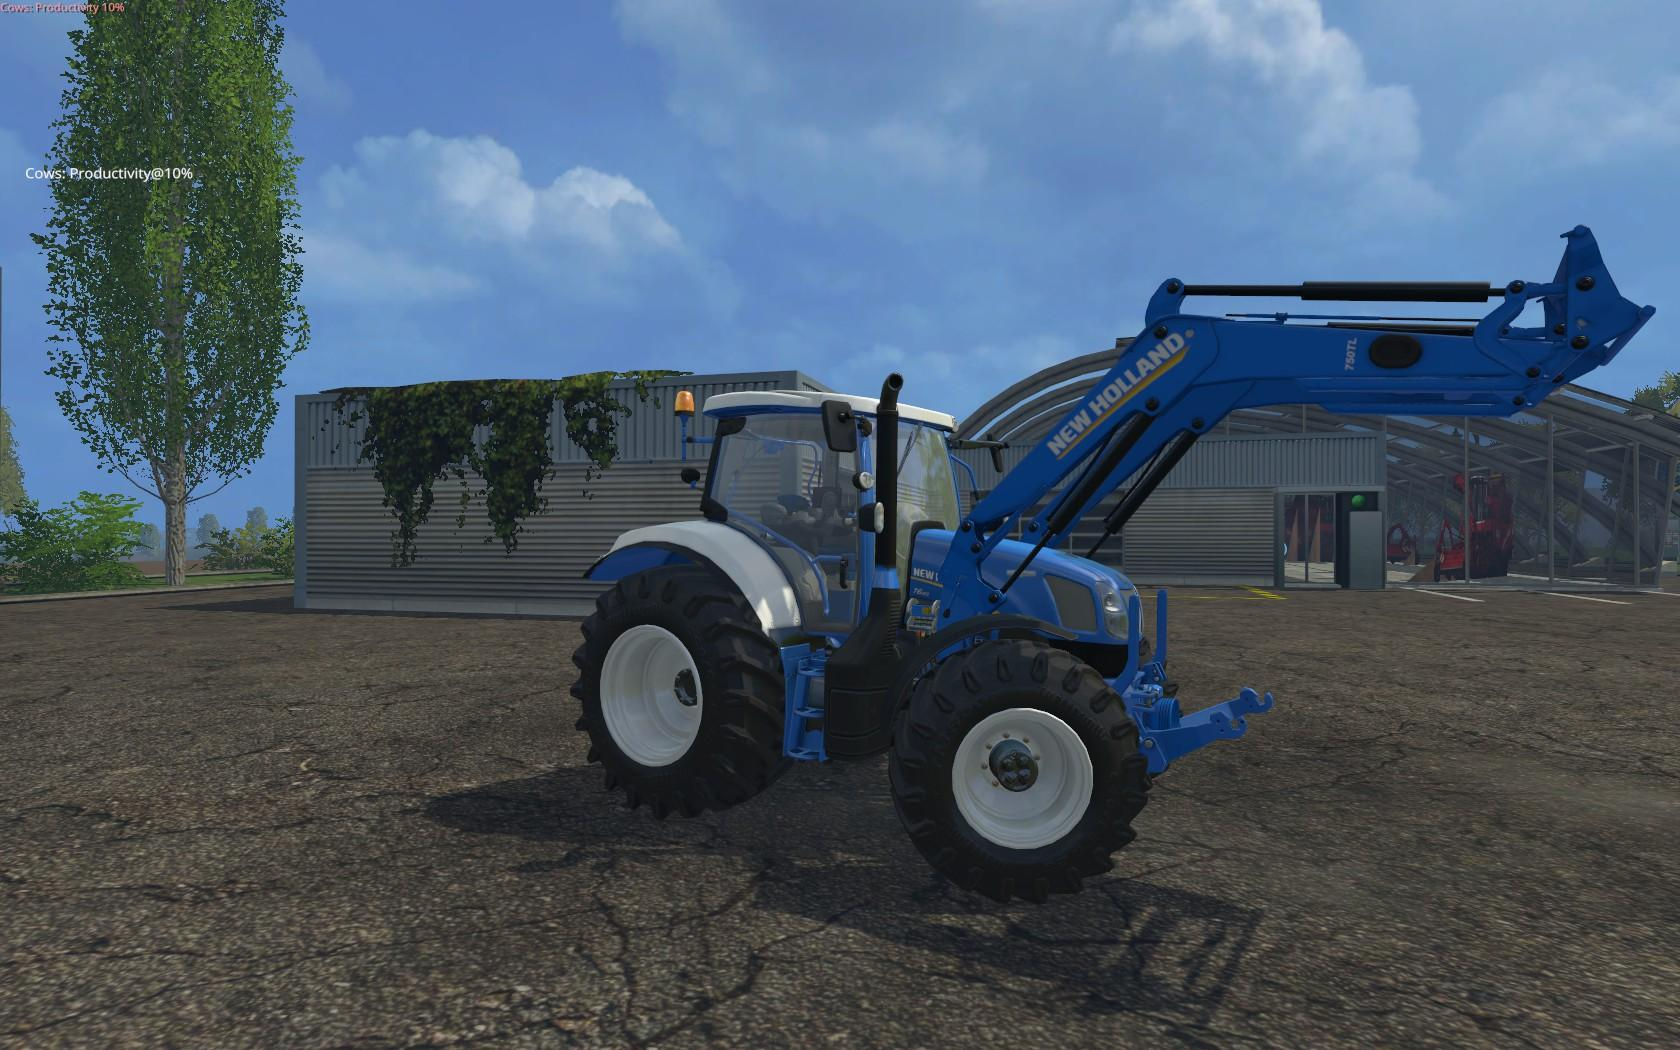 NEW HOLLAND COLORED WITH FRONT LOADER • Farming simulator 19, 17, 15